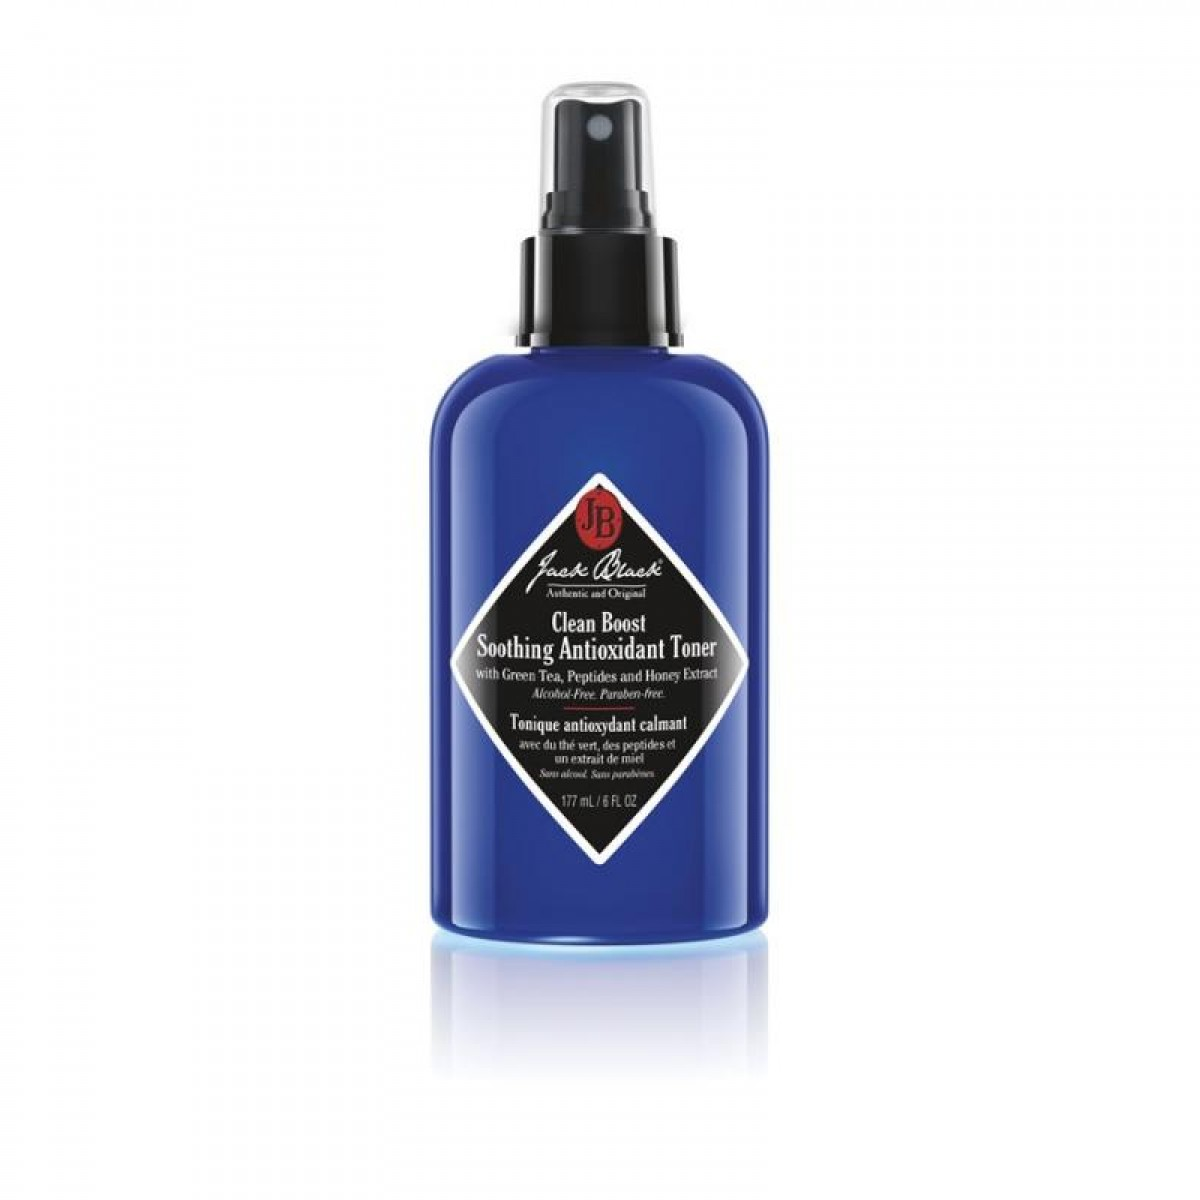 jeffontheroad-gift-ideas-grooming-jack-black-toner